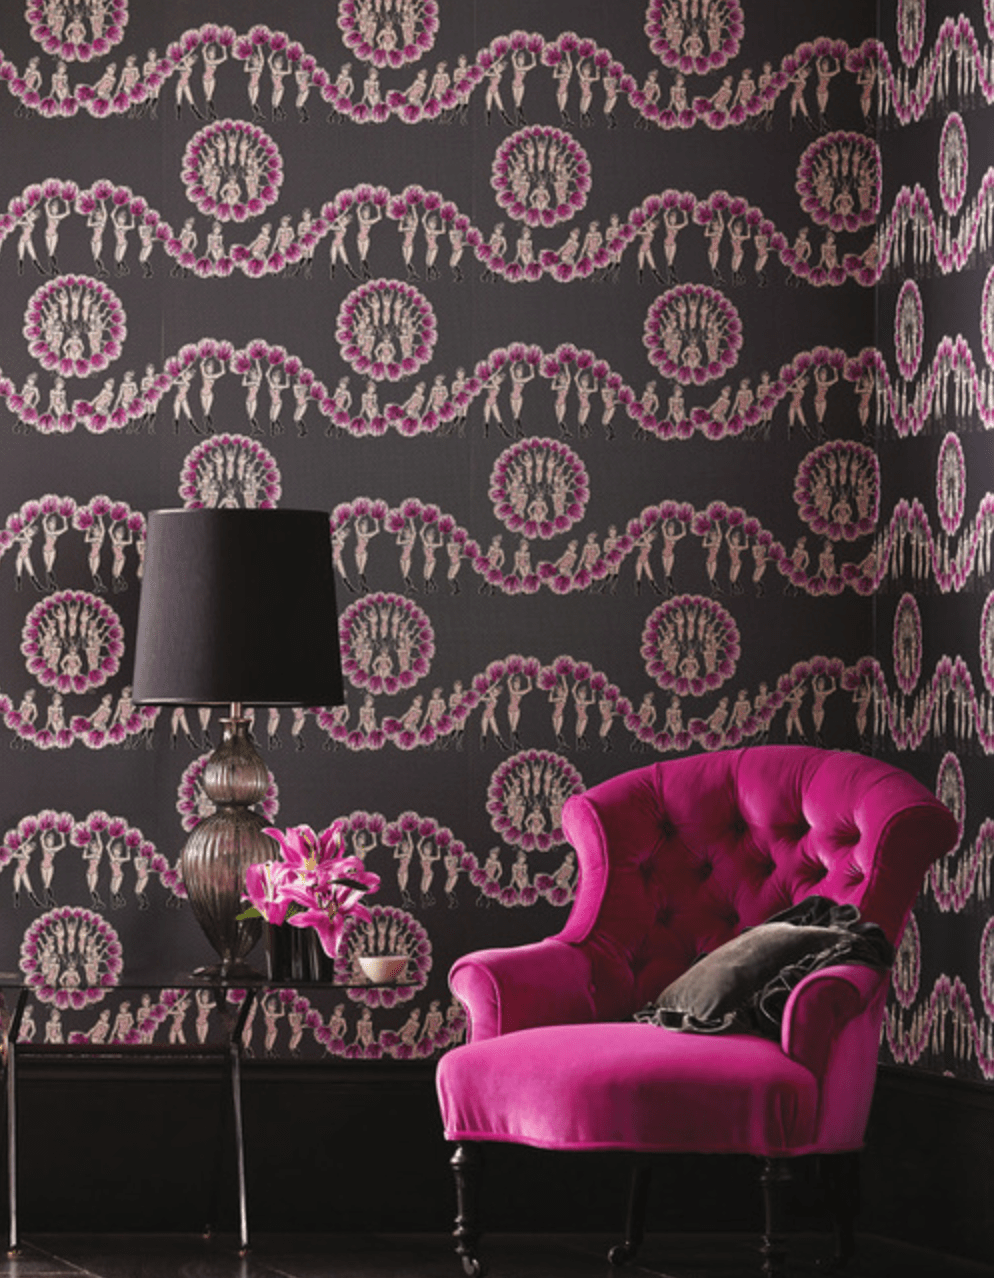 Chorus Line from the Albany Performance Wallpaper Collection